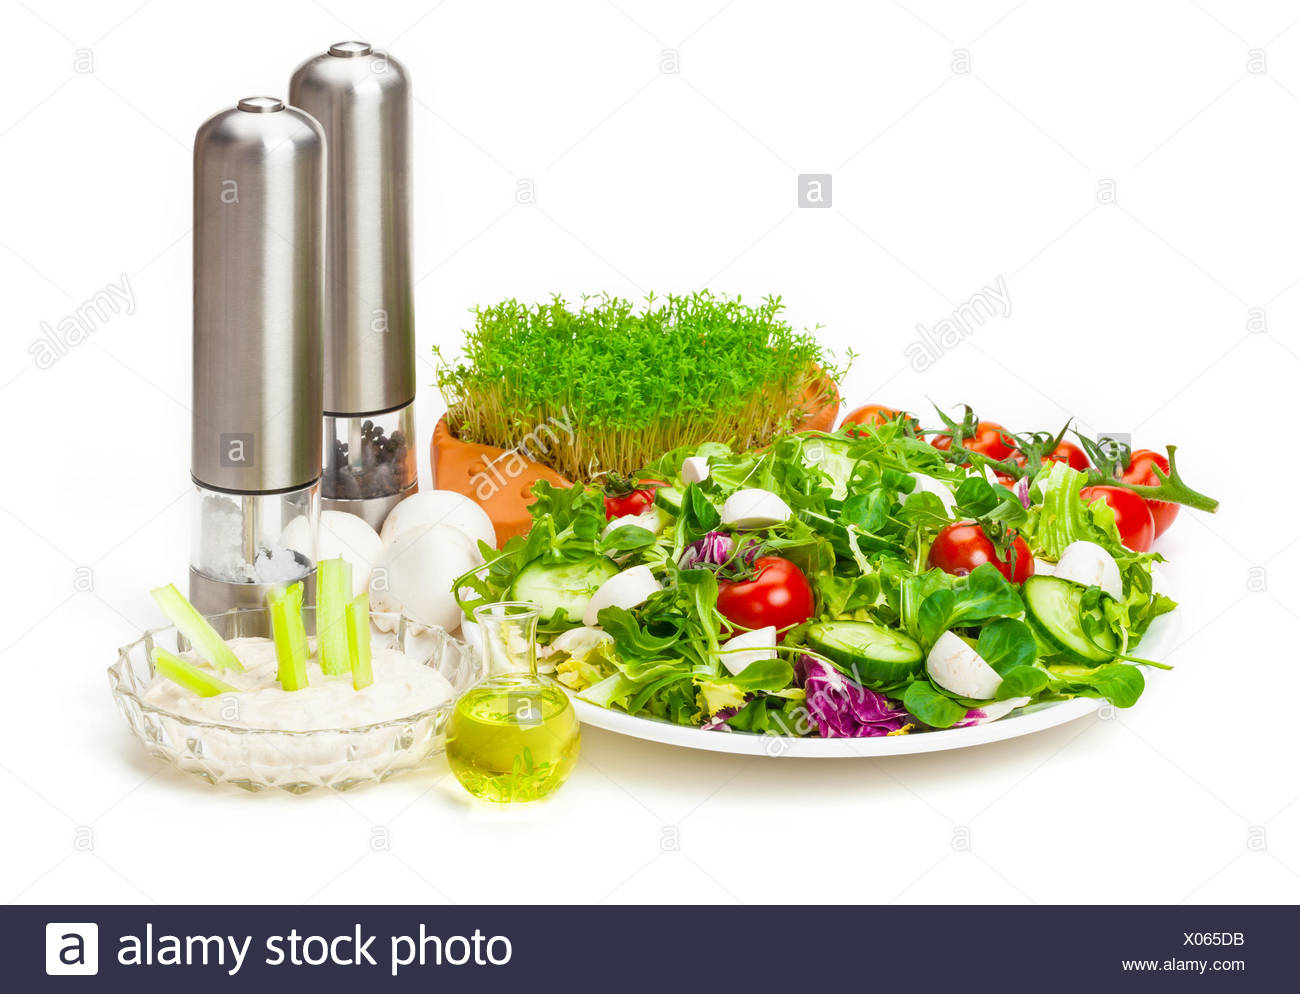 Mixed salad, dip, oil, spice grinders - Stock Image